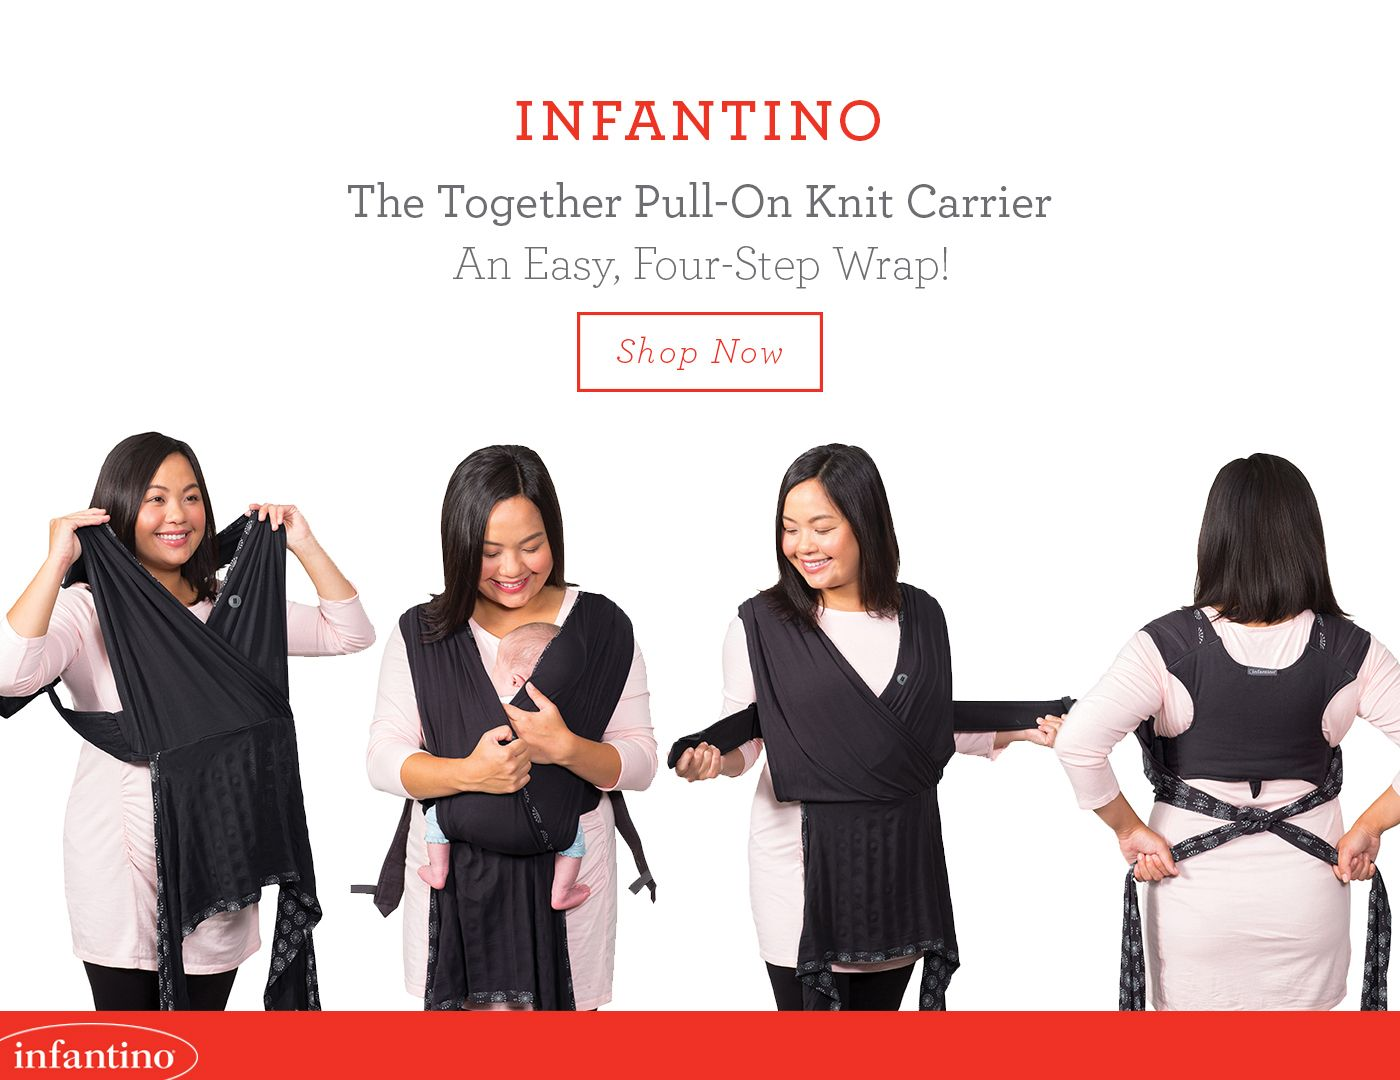 6a0eb7f886c This carrier is a must-have! The Together Pull-On Knit Carrier has ...